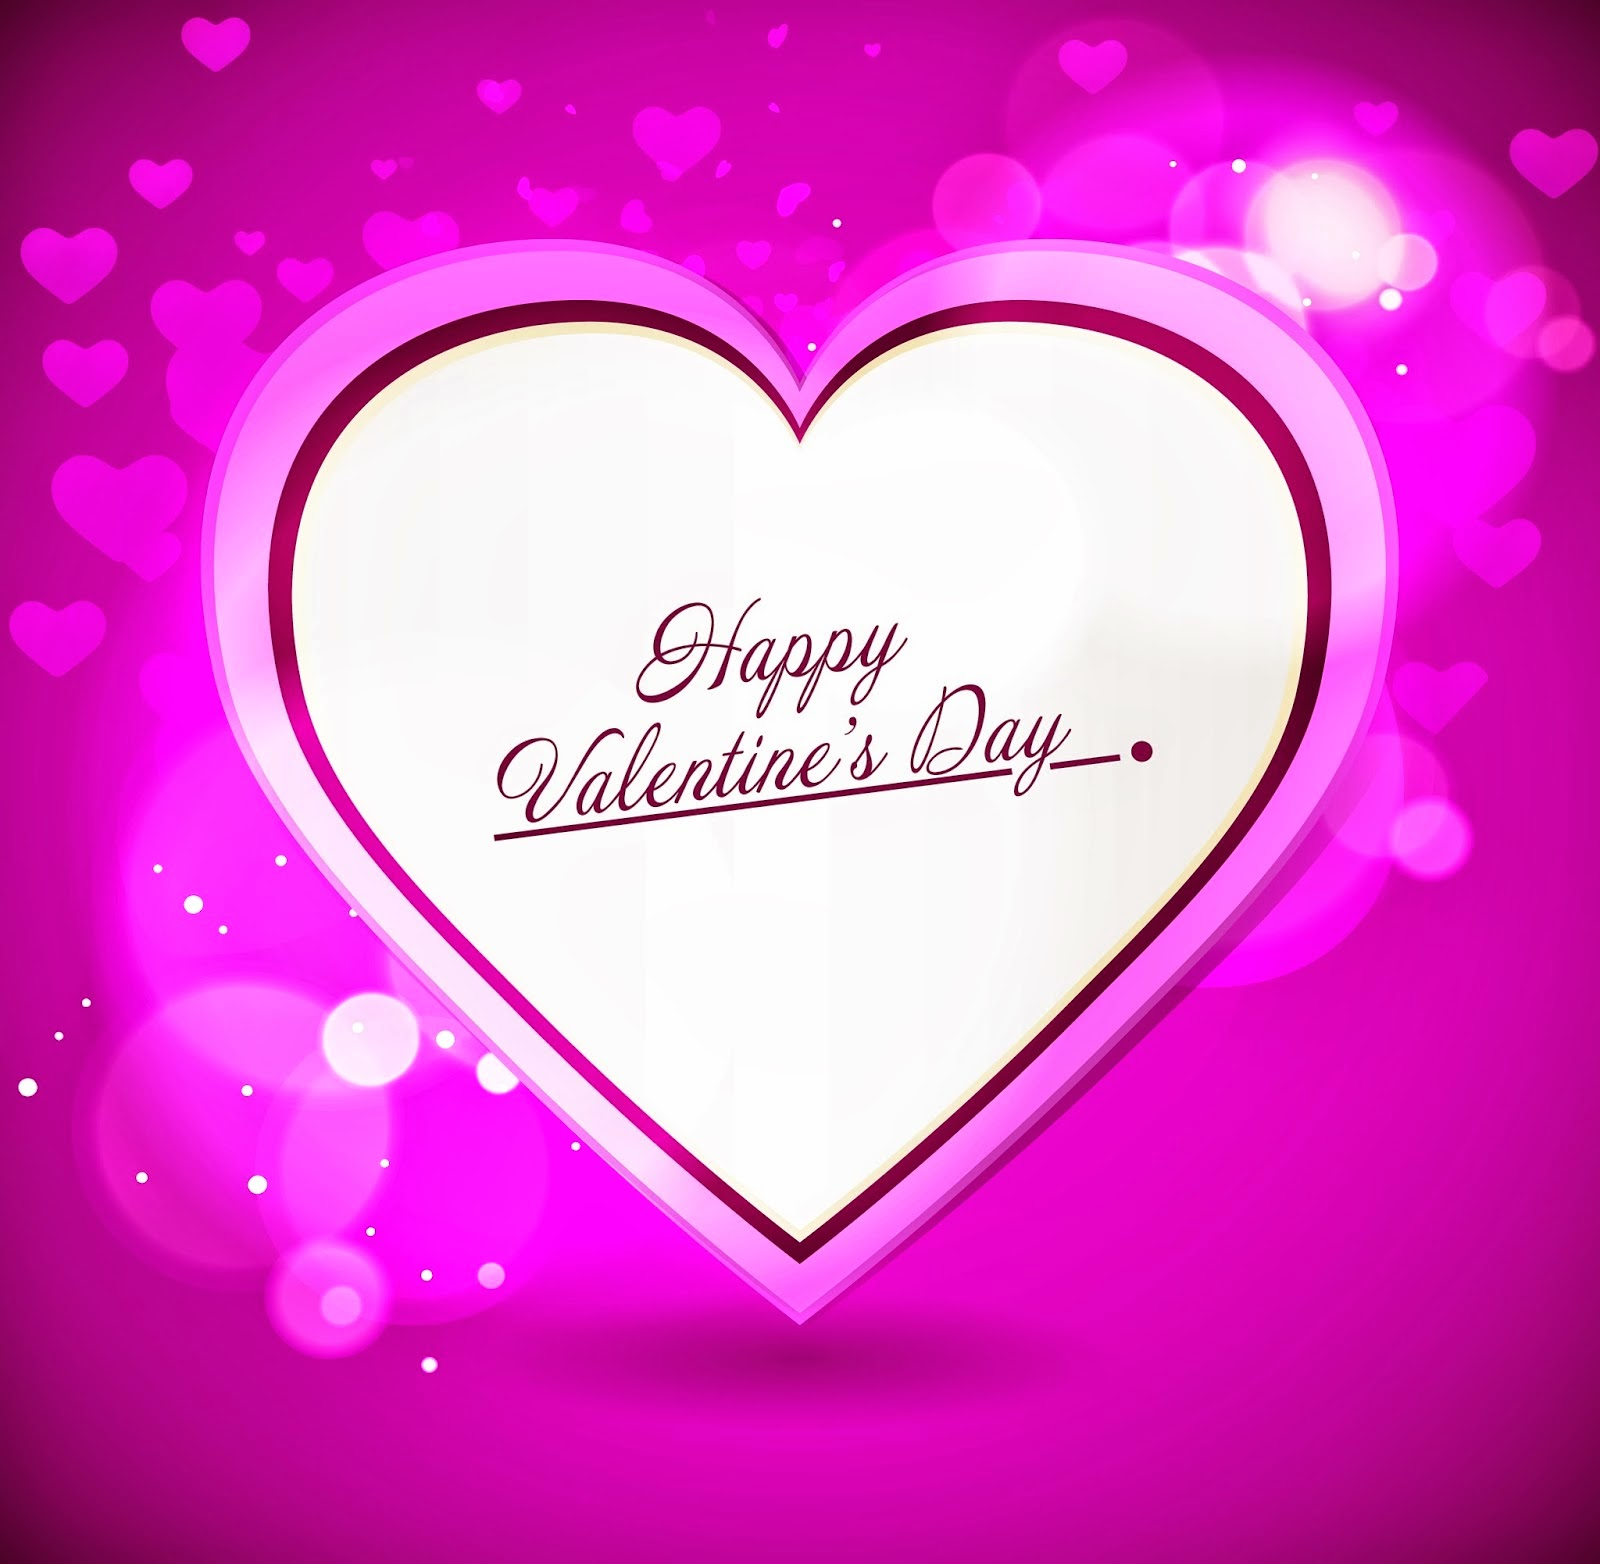 Happy Valentines Day pink background picture